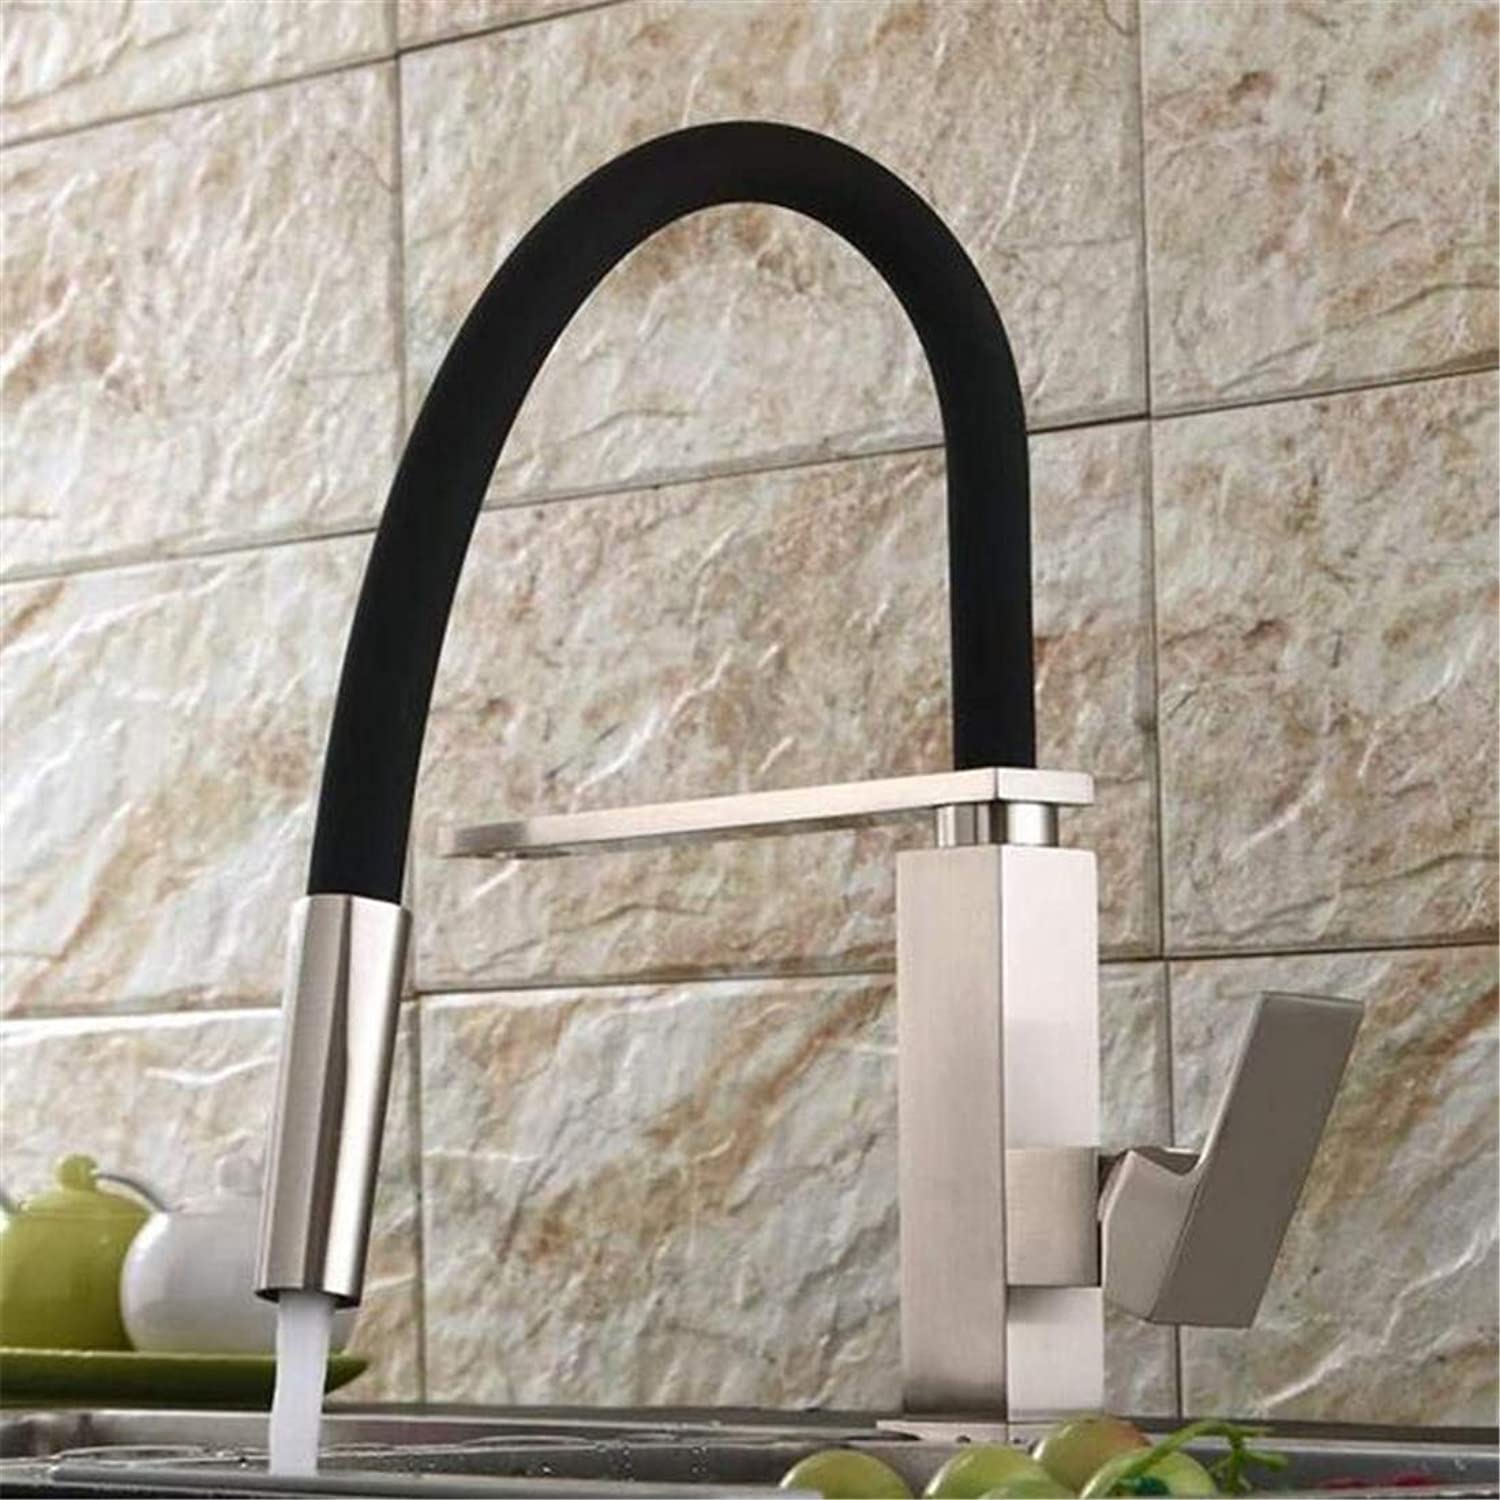 Chrome Kitchen Sink Tapbrushed Nickel Kitchen Faucet Pull Out Down Kitchen Mixer 360 Swivel Brass Sink Tap B-9204L